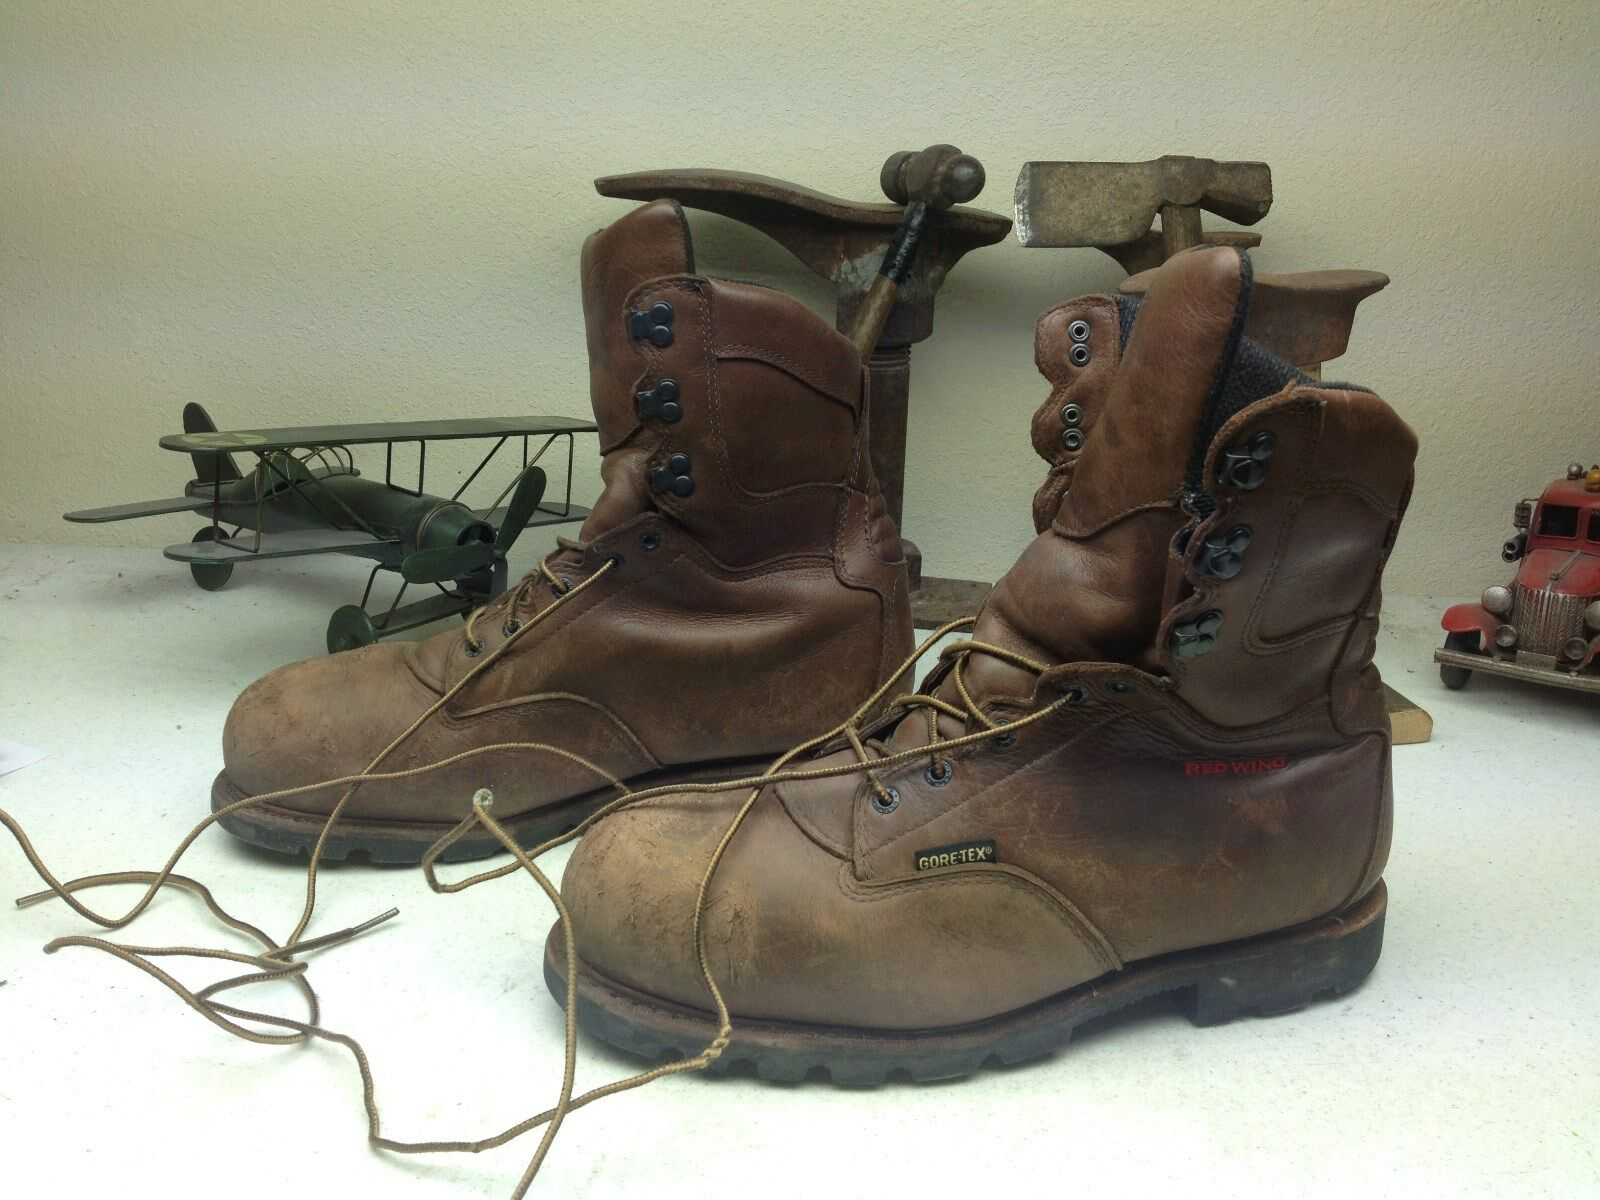 DISTRESSED STEEL LACE UP RED WING STEEL DISTRESSED TOE WORK CHORE PACKER TRUCKER BOOTS 12 EE 0af3e5